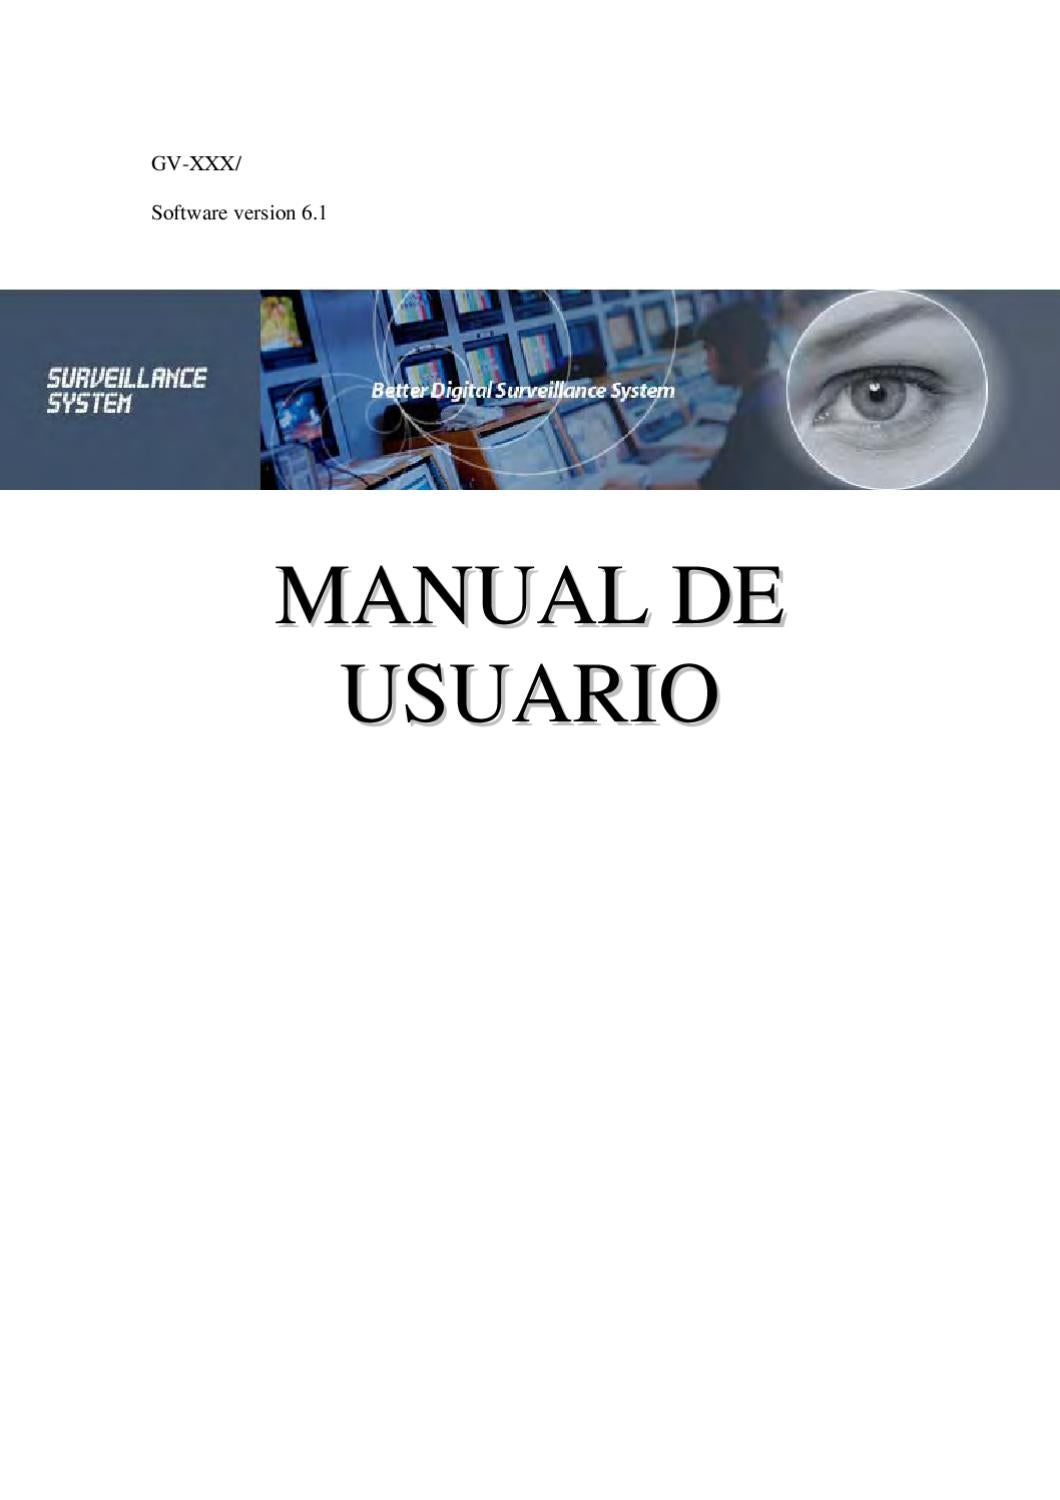 Manual geovision by armando moure - issuu